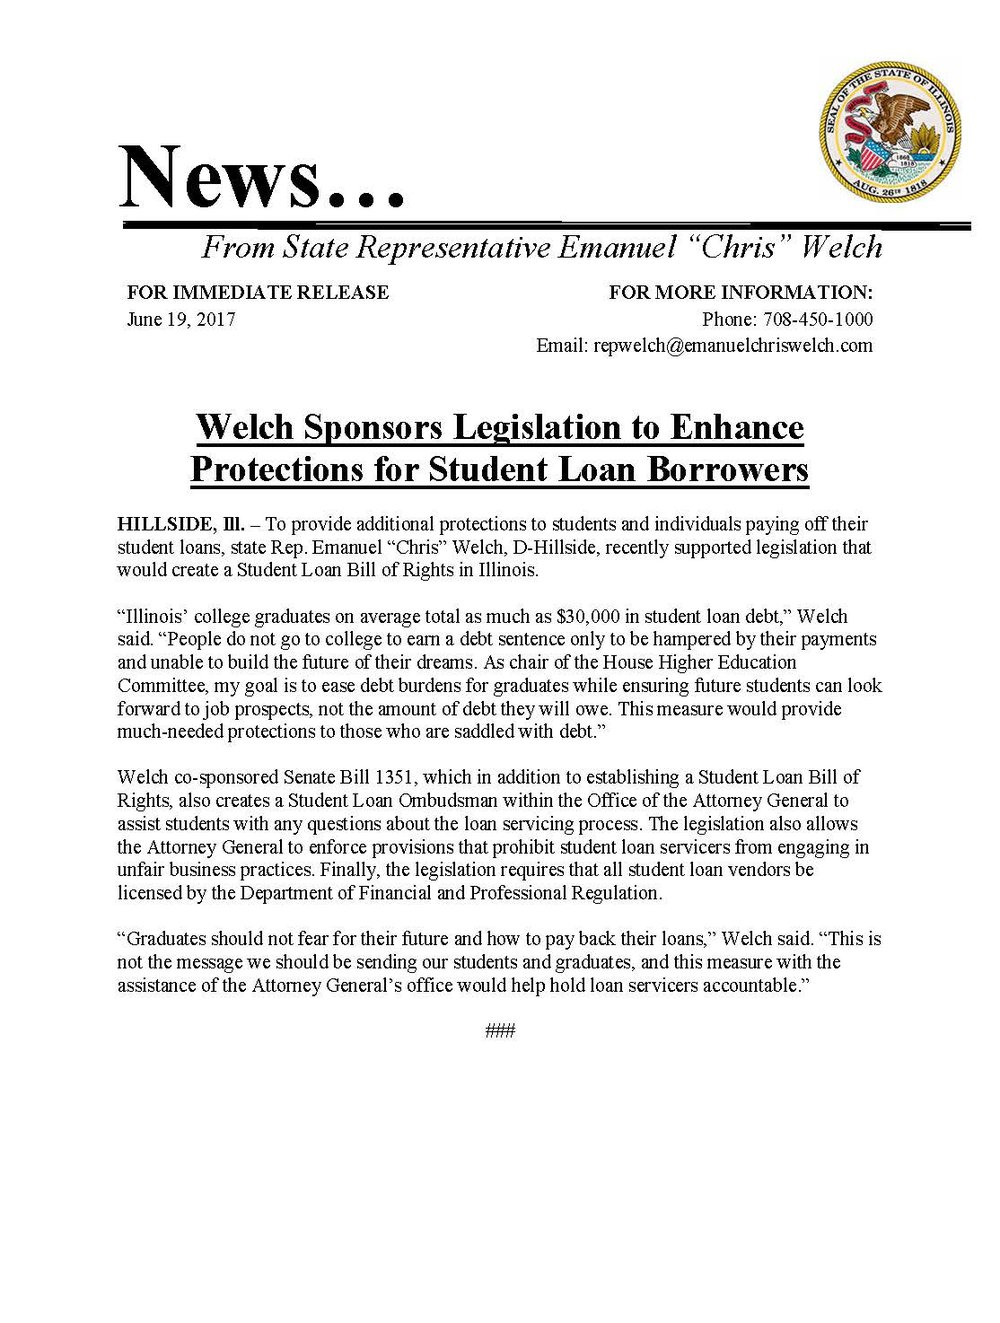 Welch Sponsors Legislation to Enhance Protections for Student Loan Borrowers  (June 19, 2017)